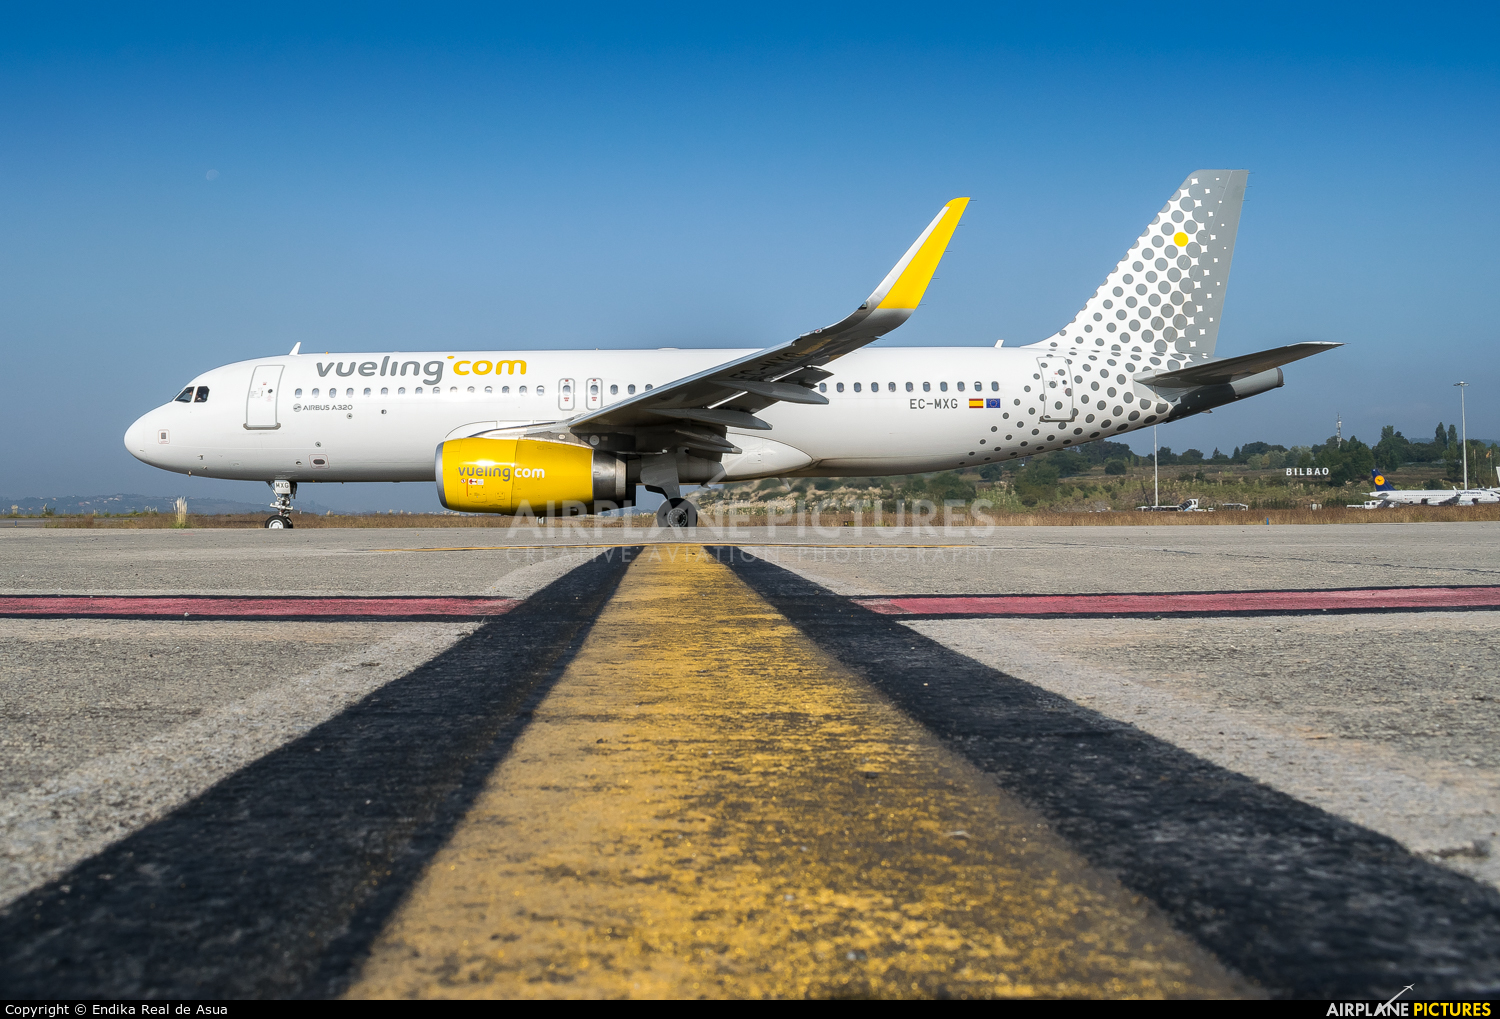 Vueling Airlines EC-MXG aircraft at Bilbao